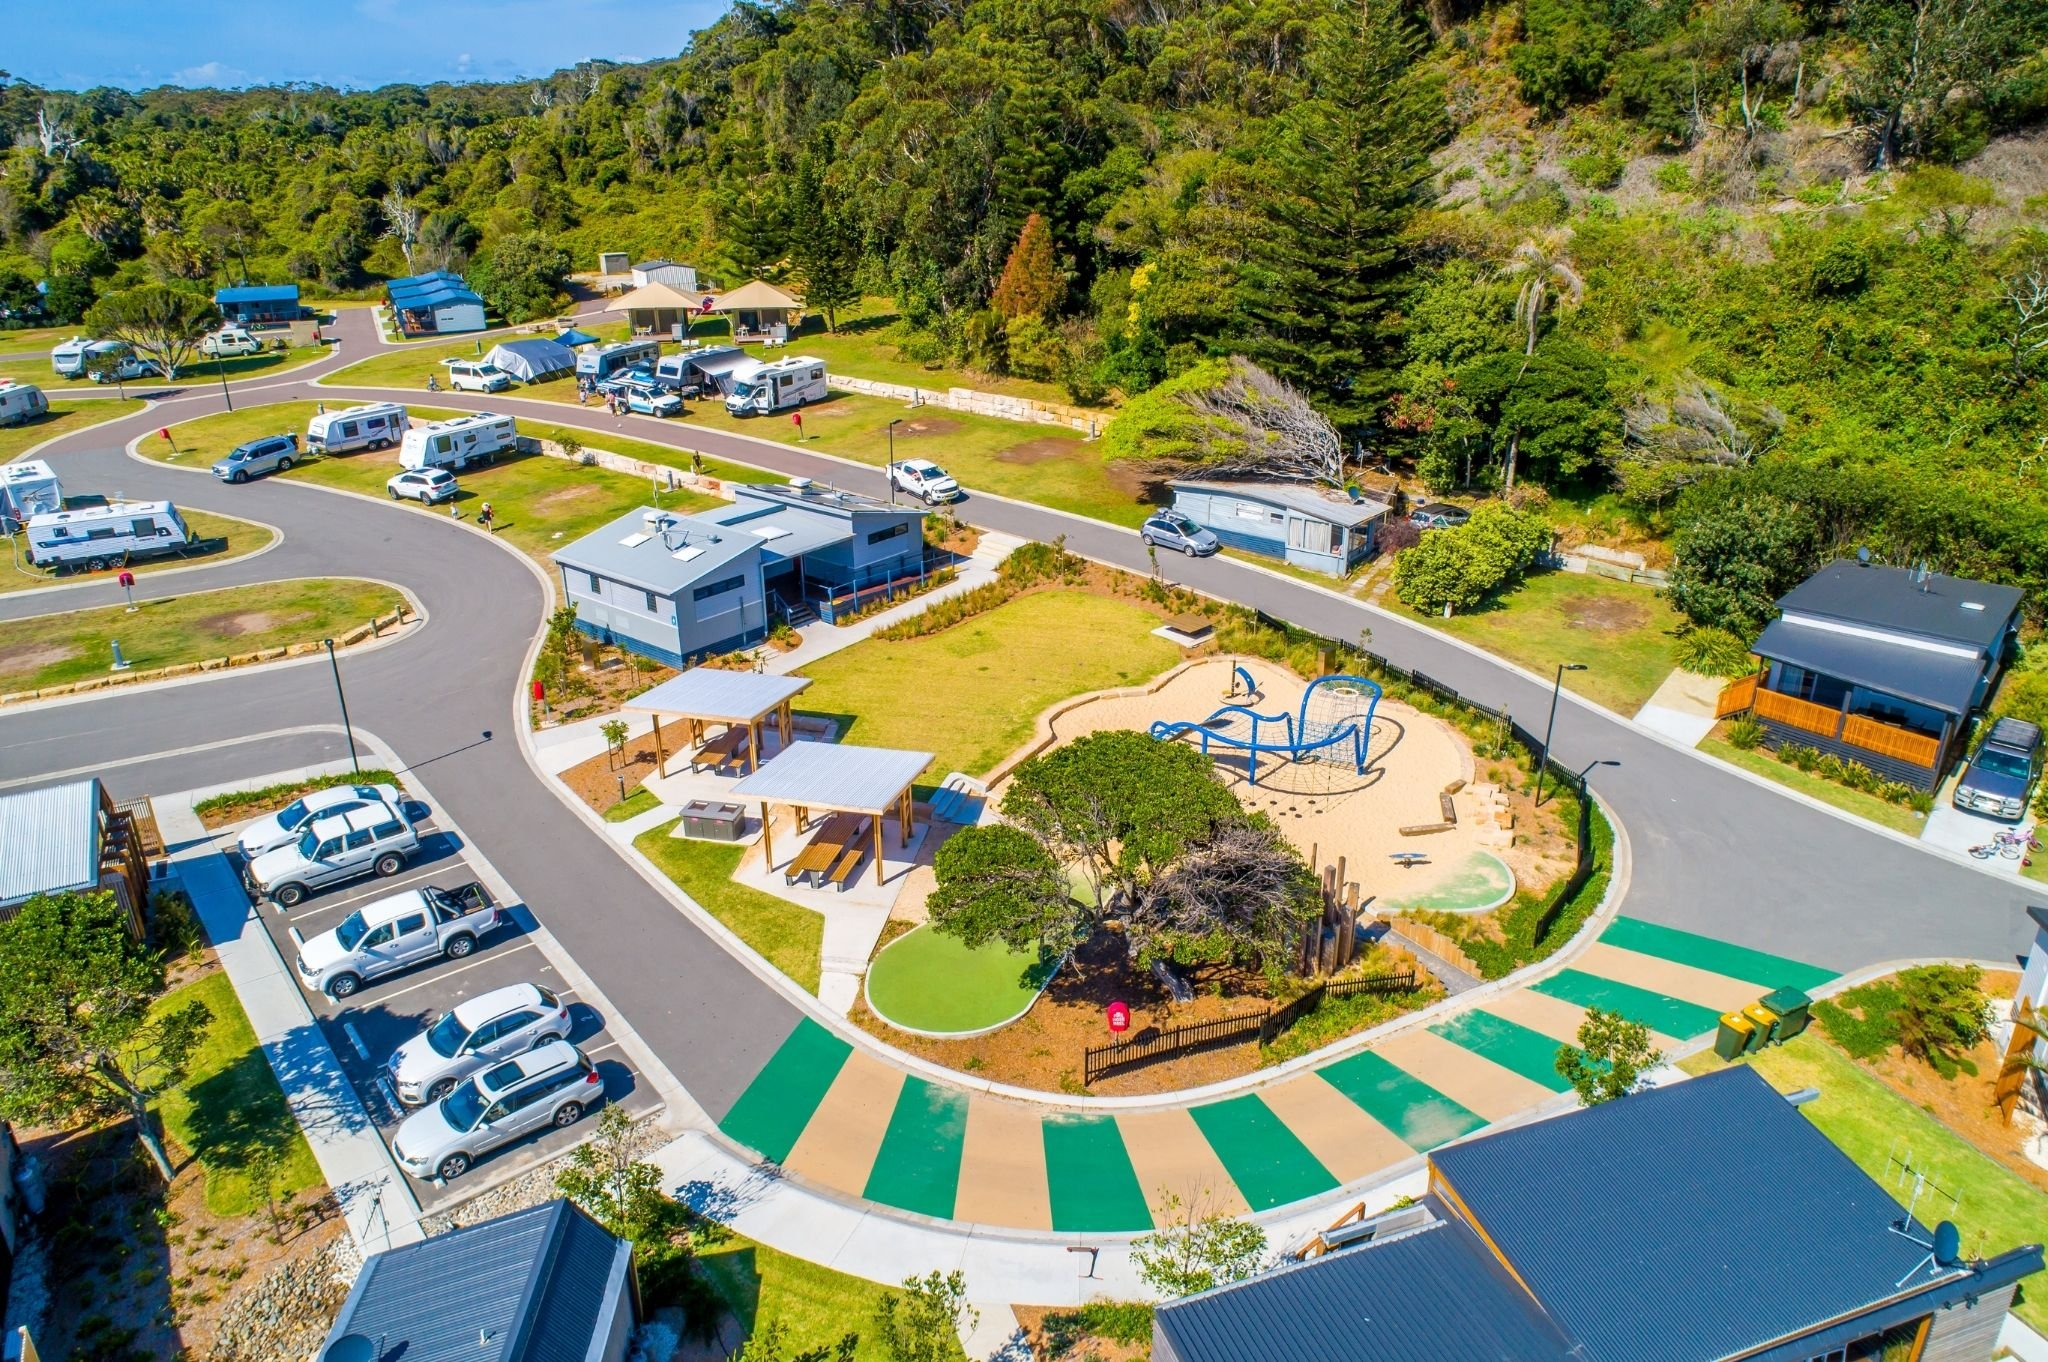 An aerial image of the children's playground at Reflections Holiday Parks Seal Rocks